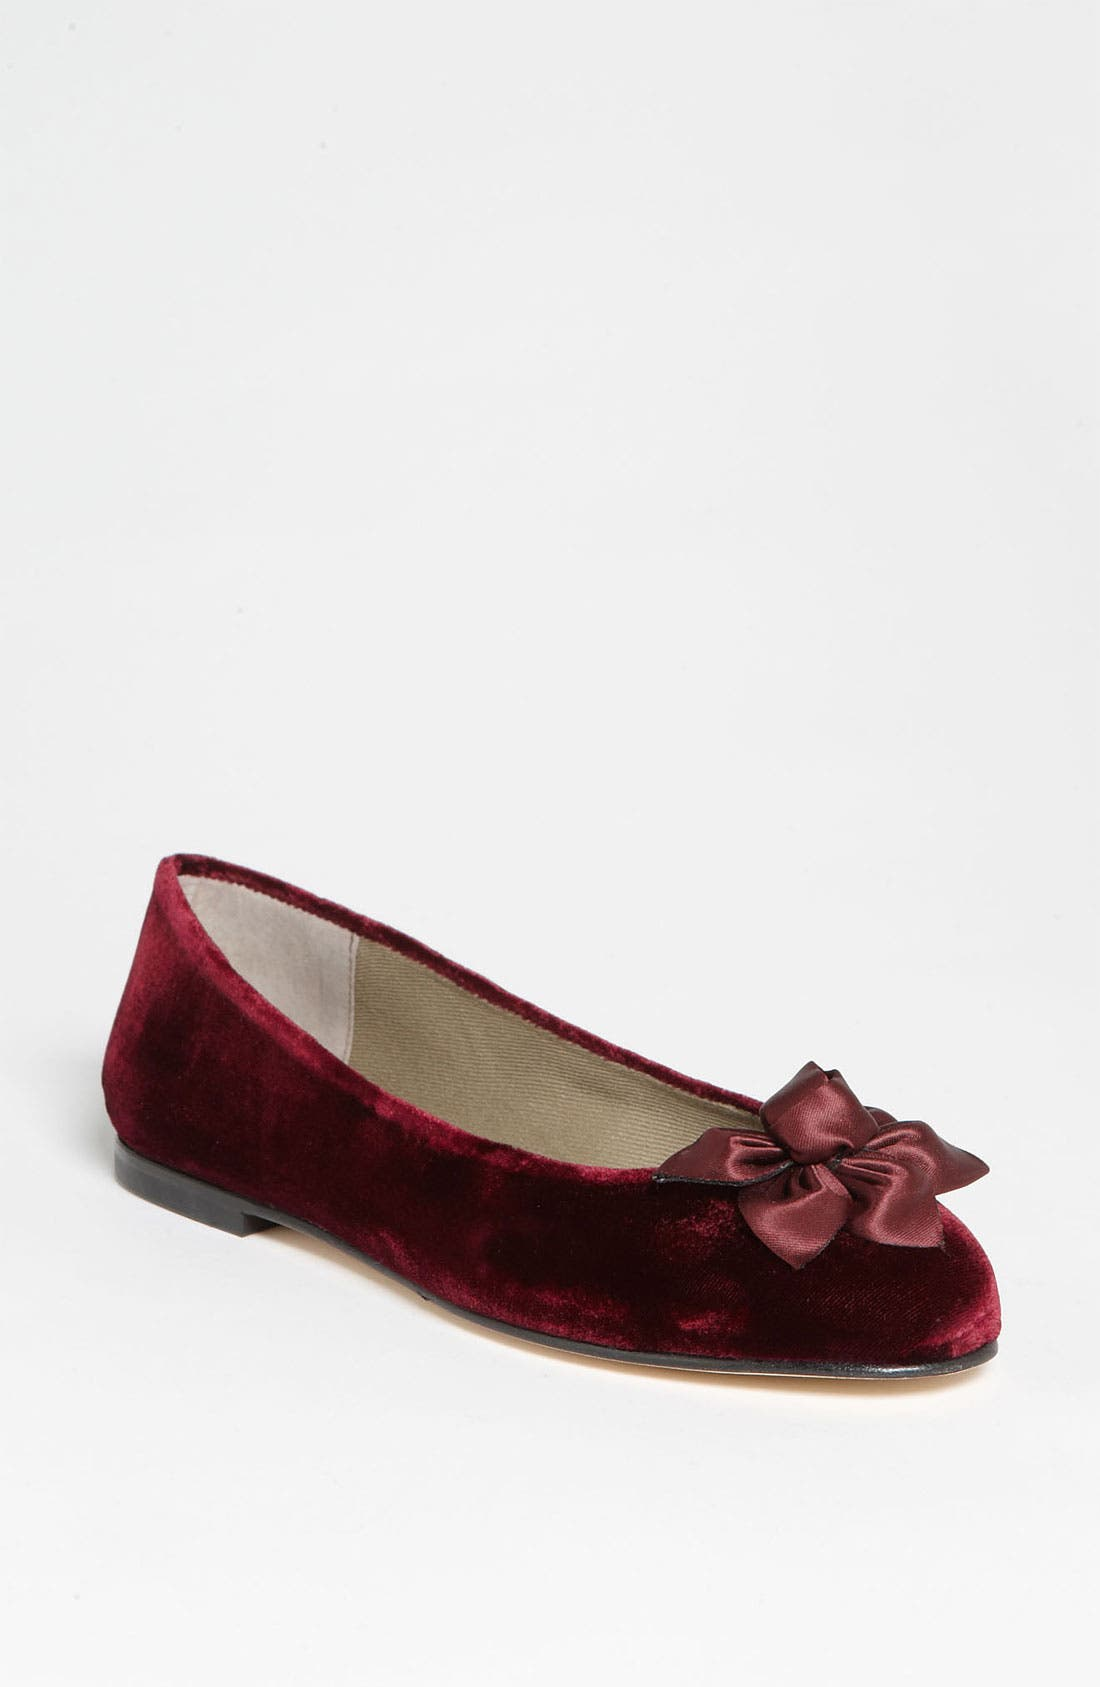 Main Image - French Sole 'Gorgeous' Ballet Flat